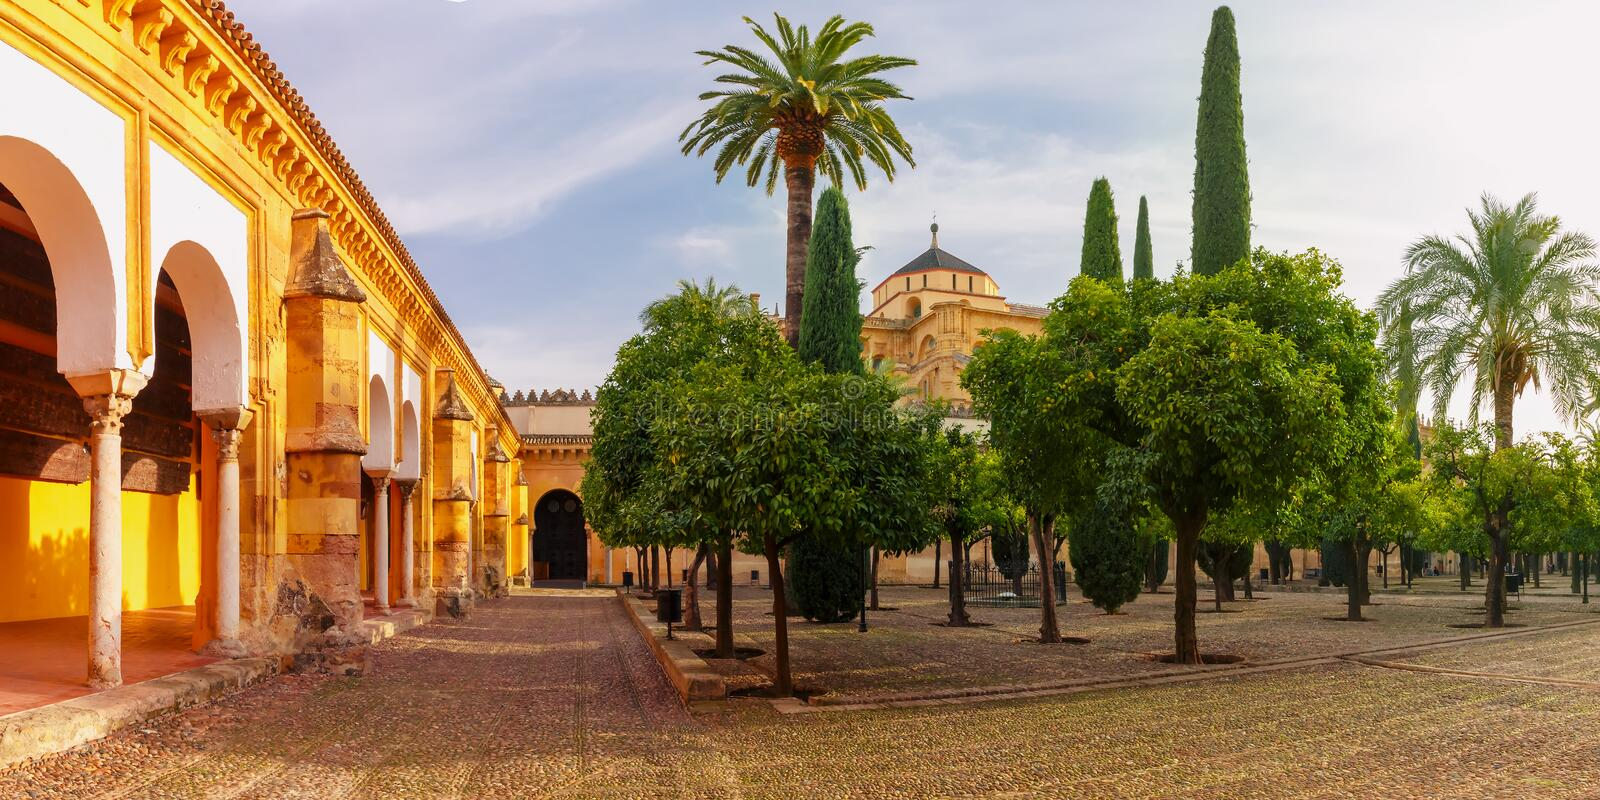 Courtyard of Great Mosque Mezquita, Cordoba, Spain royalty free stock images